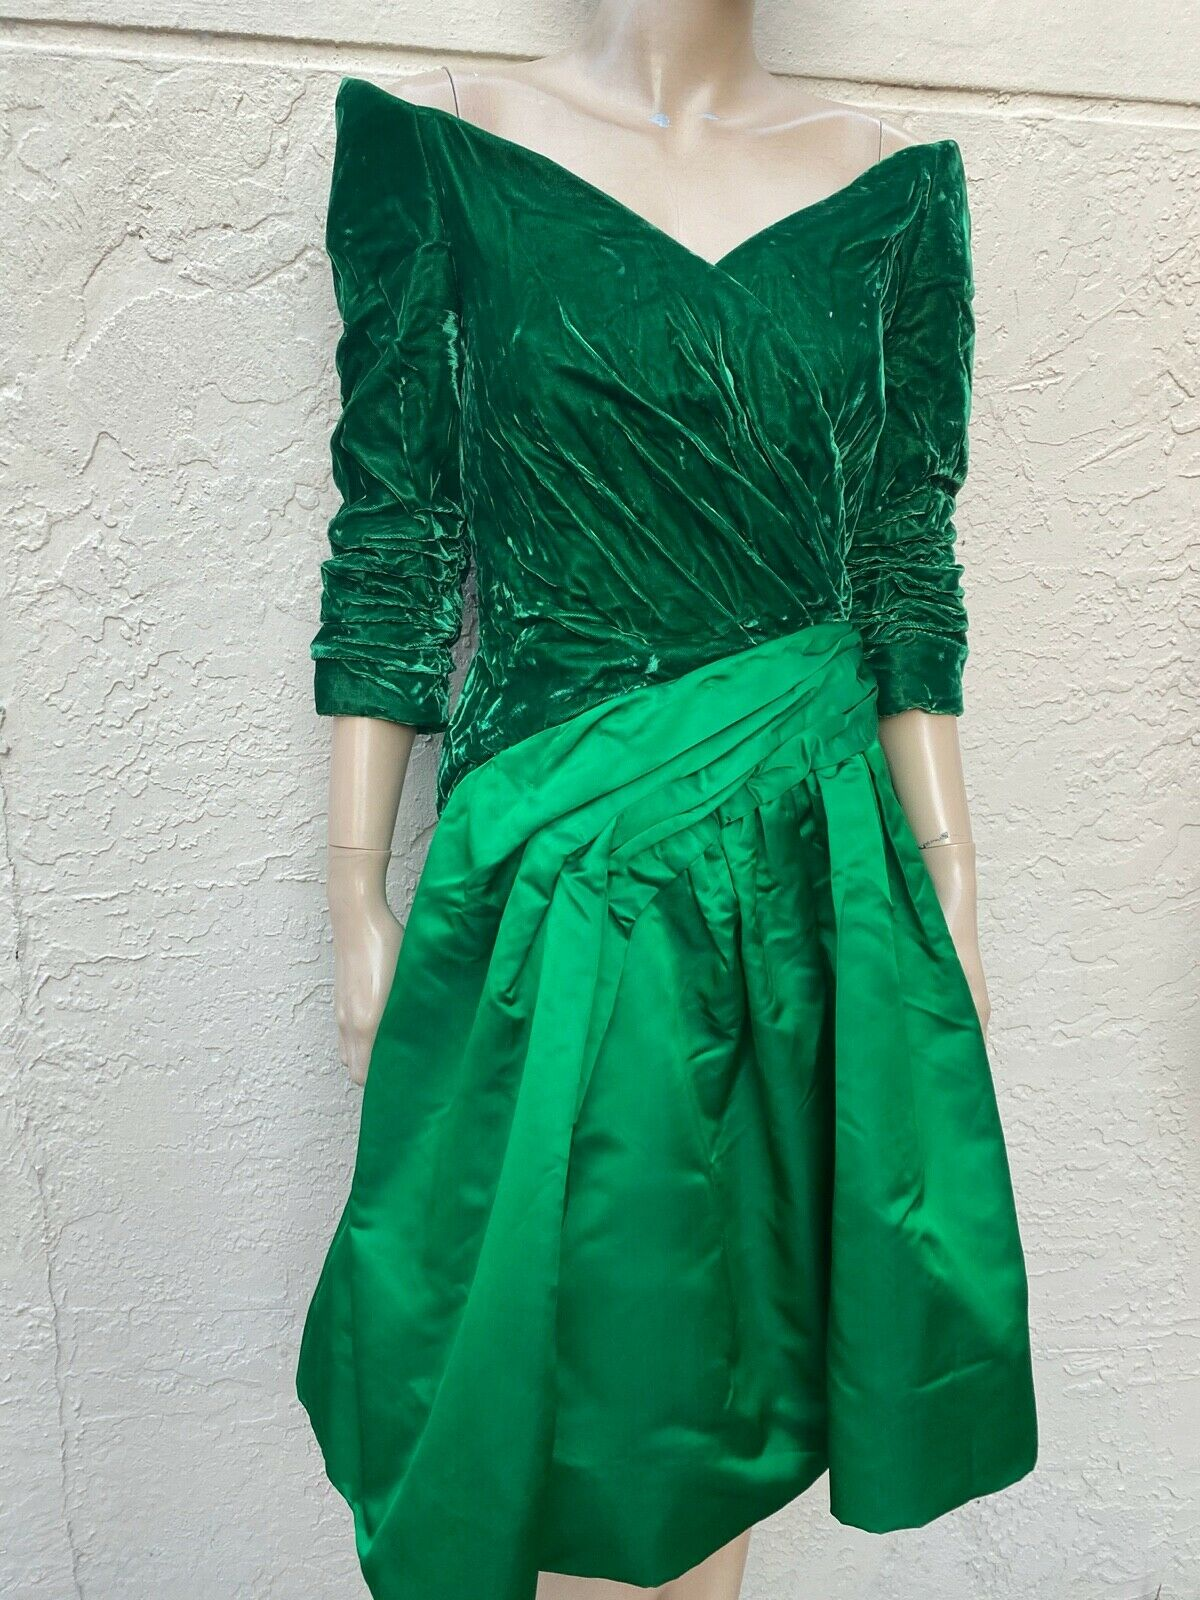 ARNOLD SCAASI BOUTIQUE VINTAGE 80's OFF THE SHOUL… - image 3